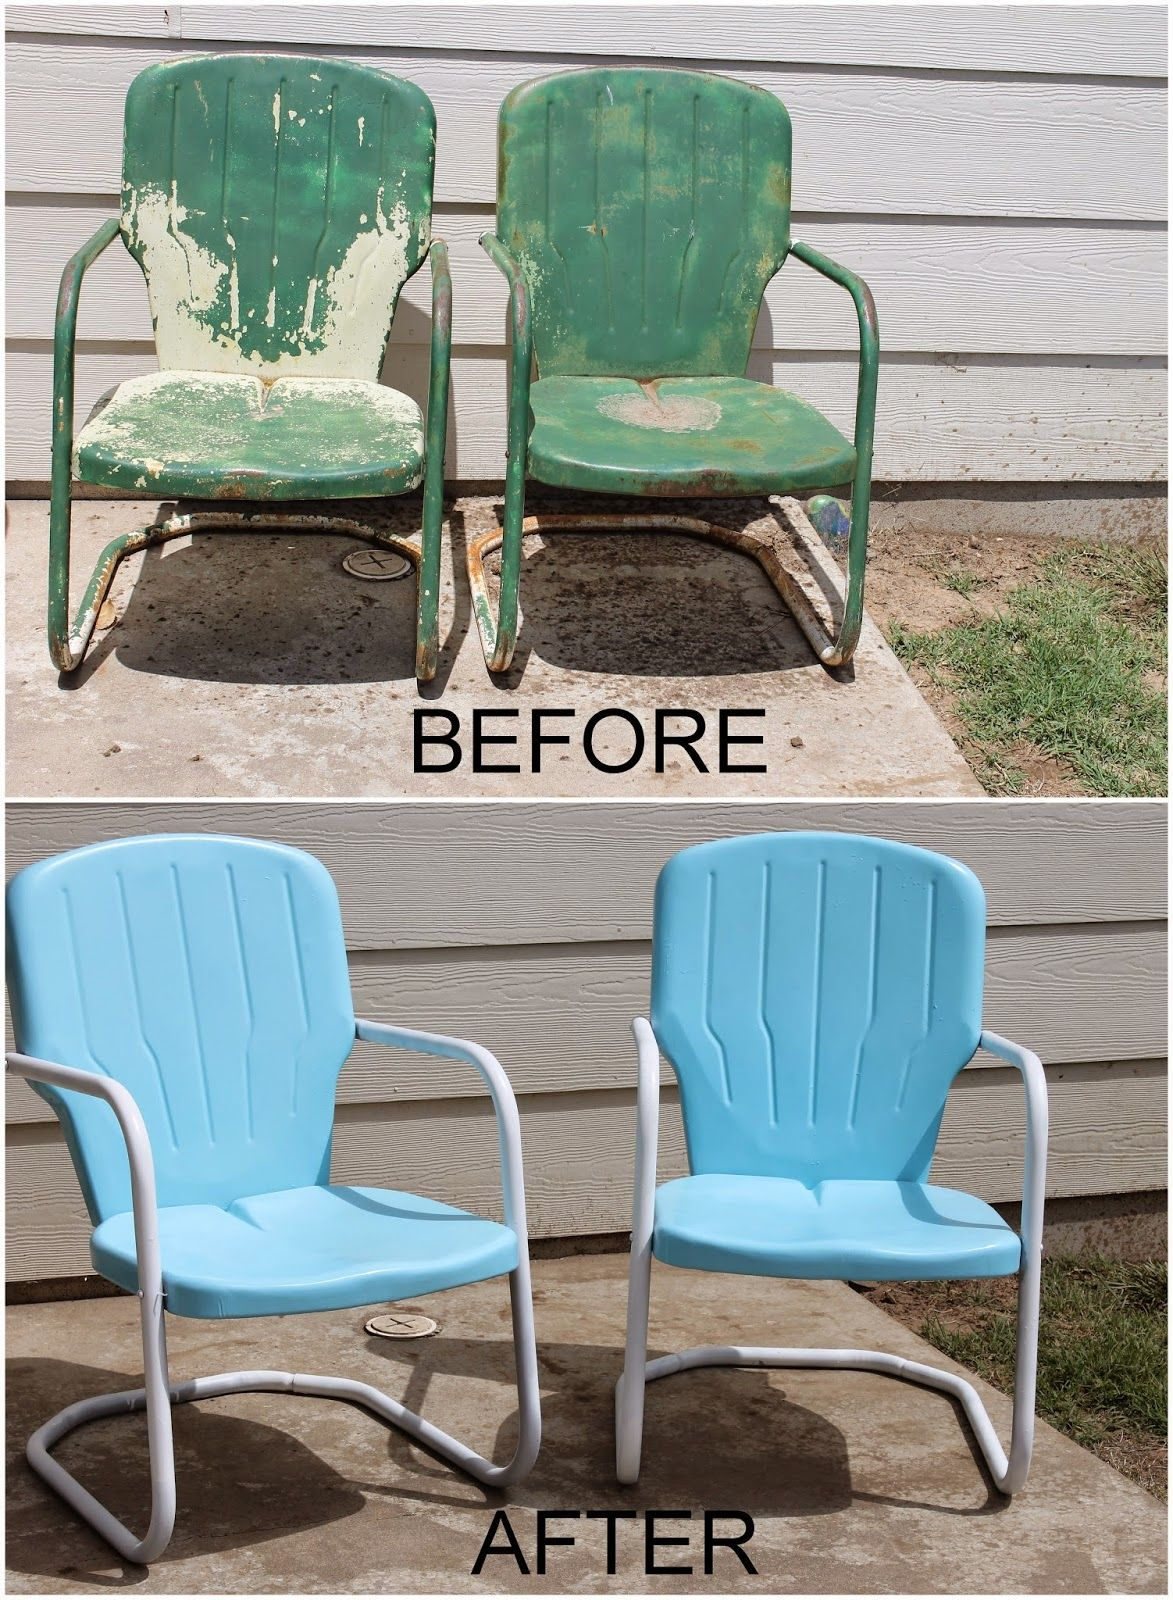 Repaint Old Metal Patio Chairs Diy Paint Outdoor Metal Motel Chairs